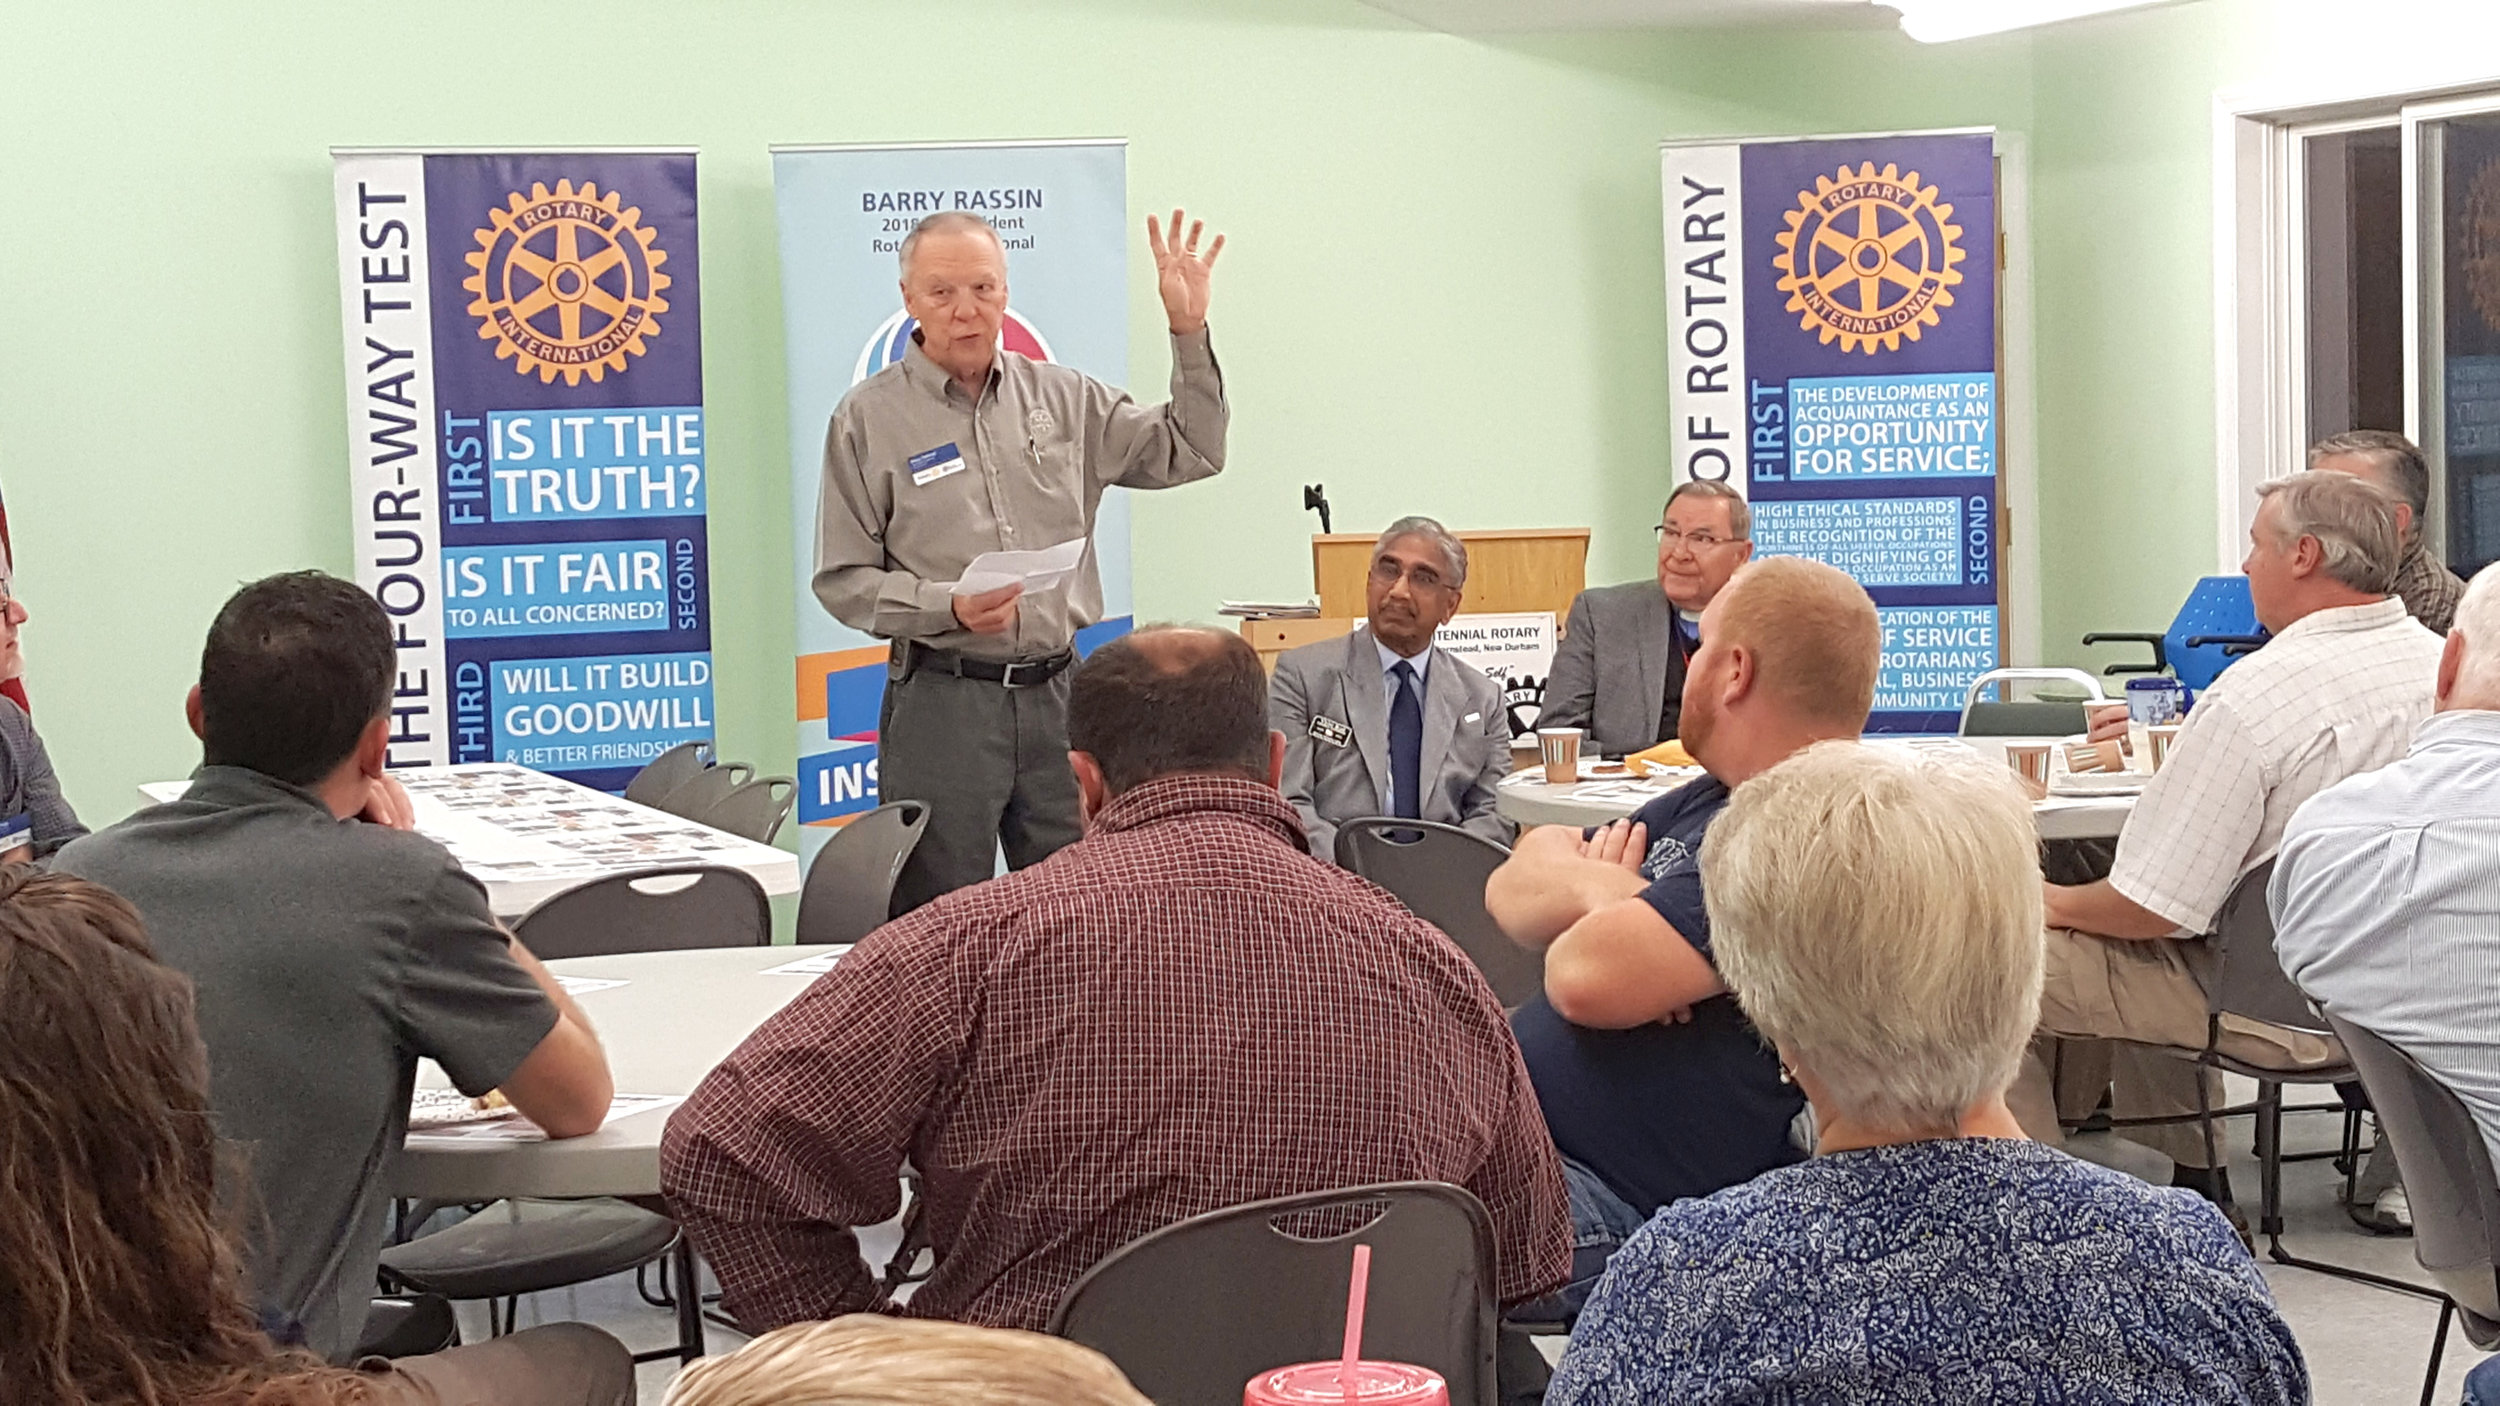 District Governor Venu Rao is introduced to the Alton Centennial Rotary Club. The leader is meeting with each of the 59 clubs in his Southern NH & VT district, encouraging them to find ways to share more publicly about the meaningful work they do in their communities and around the world.